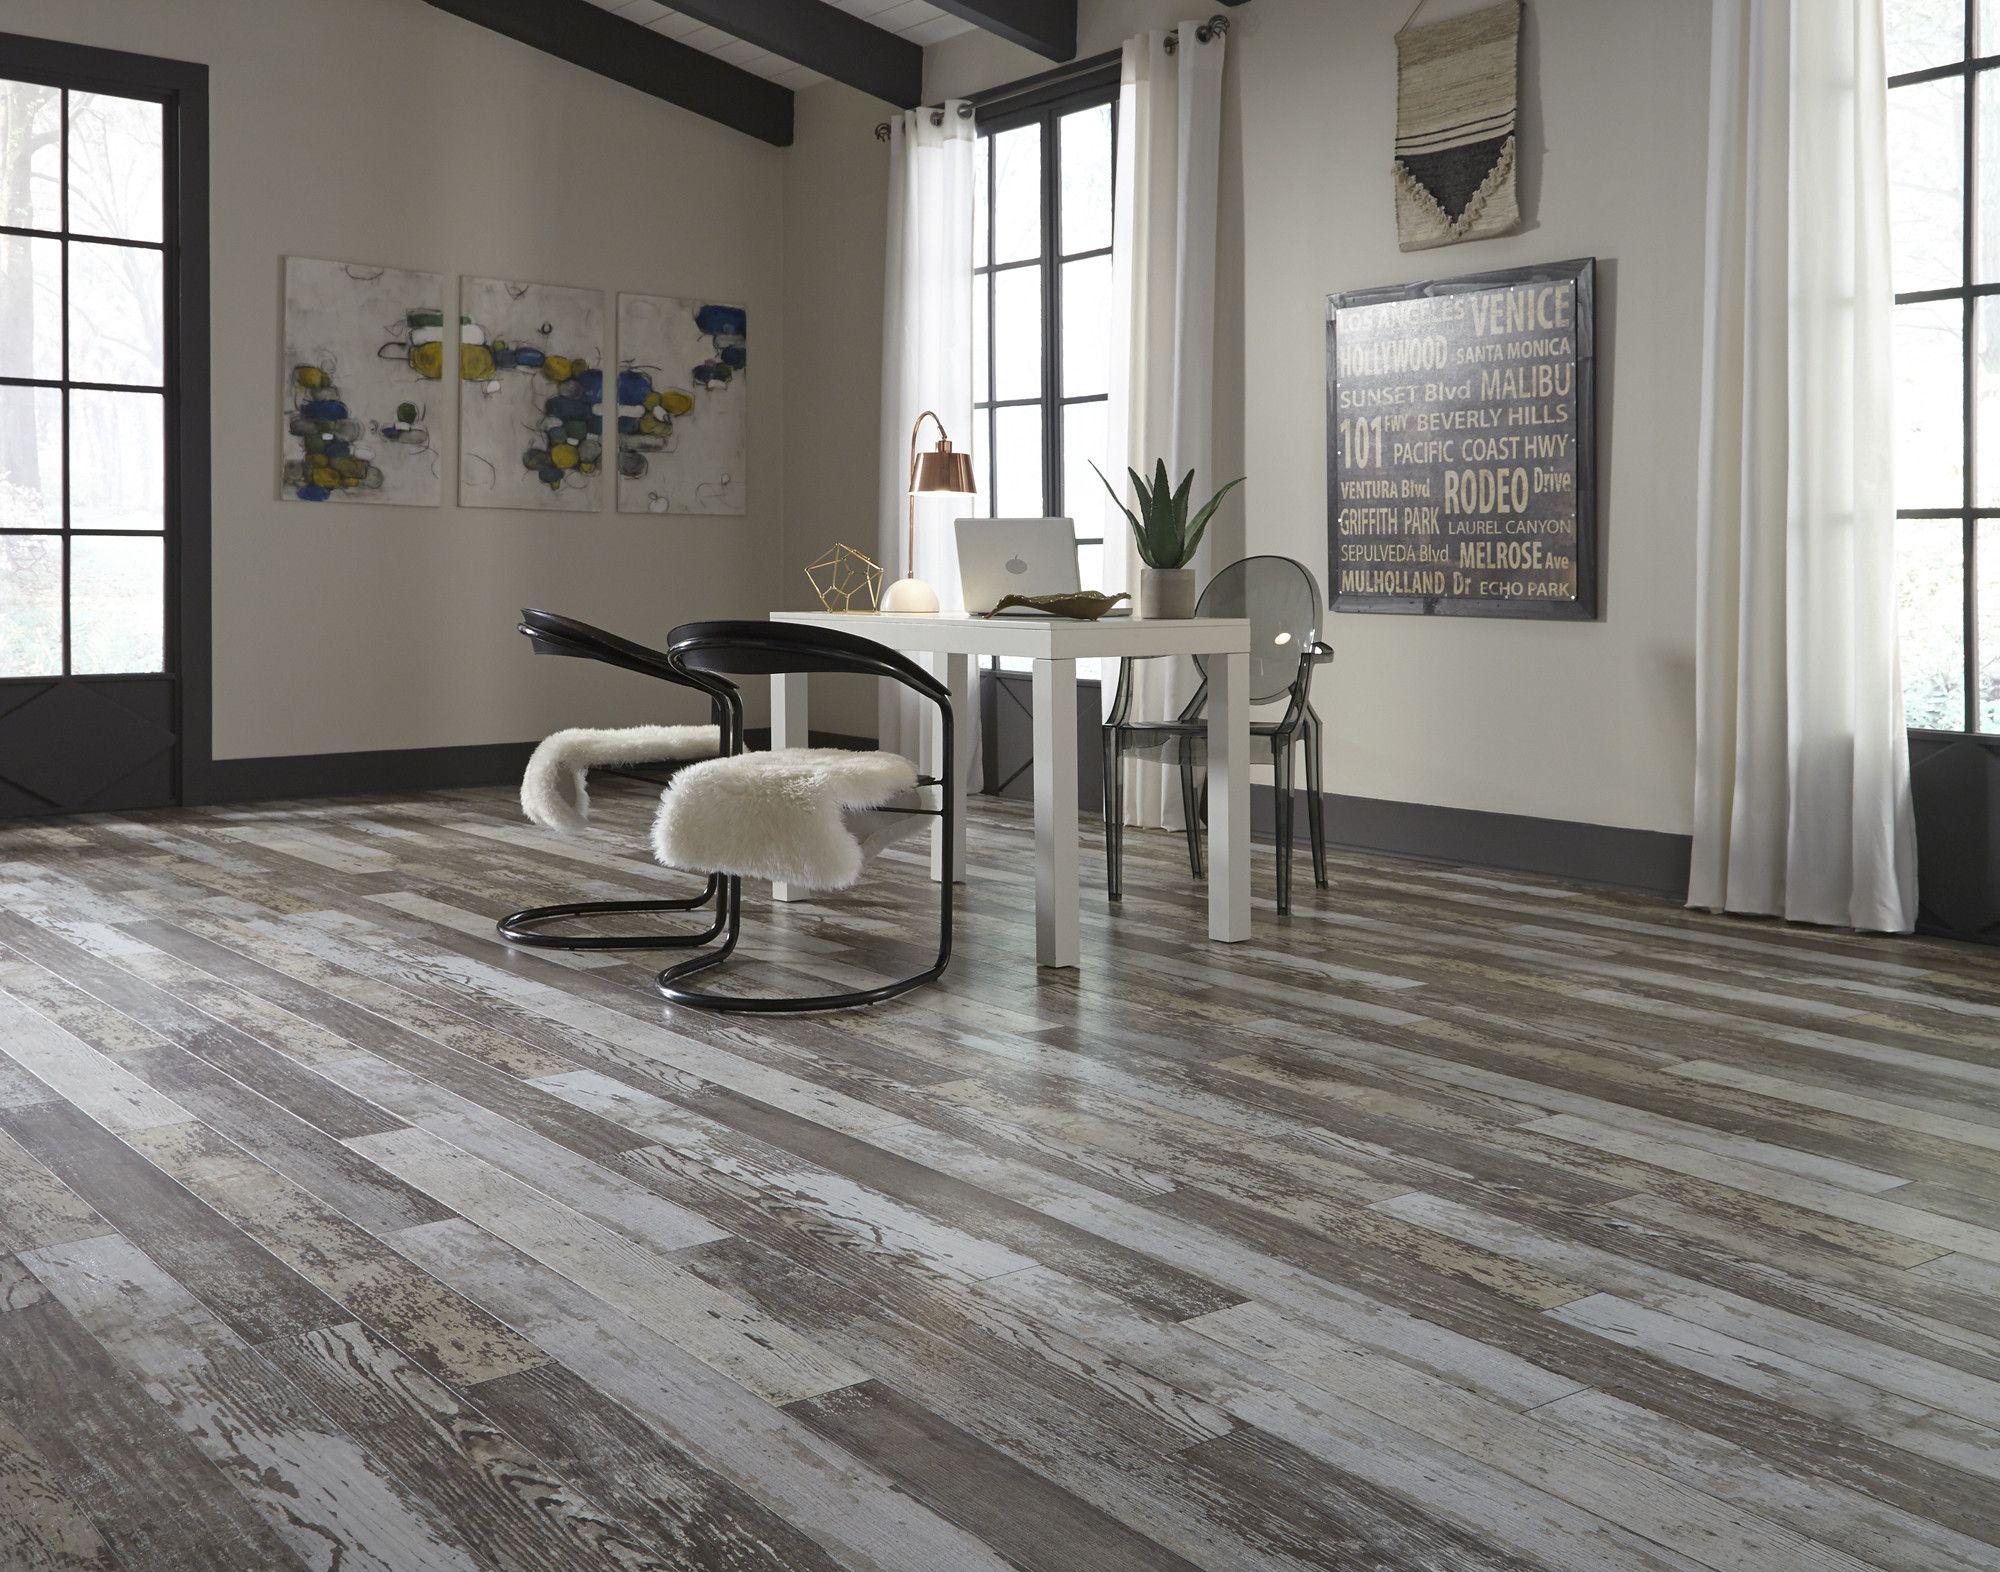 Lumber Liquidators Hardwood Flooring Of Breathtaking Lumber Liquidators Hardwood Flooring Beautiful Floors Intended for Breathtaking Lumber Liquidator Hardwood Flooring V P Talk Design Trend Woodworking the Distressed Rustic Look I Popular